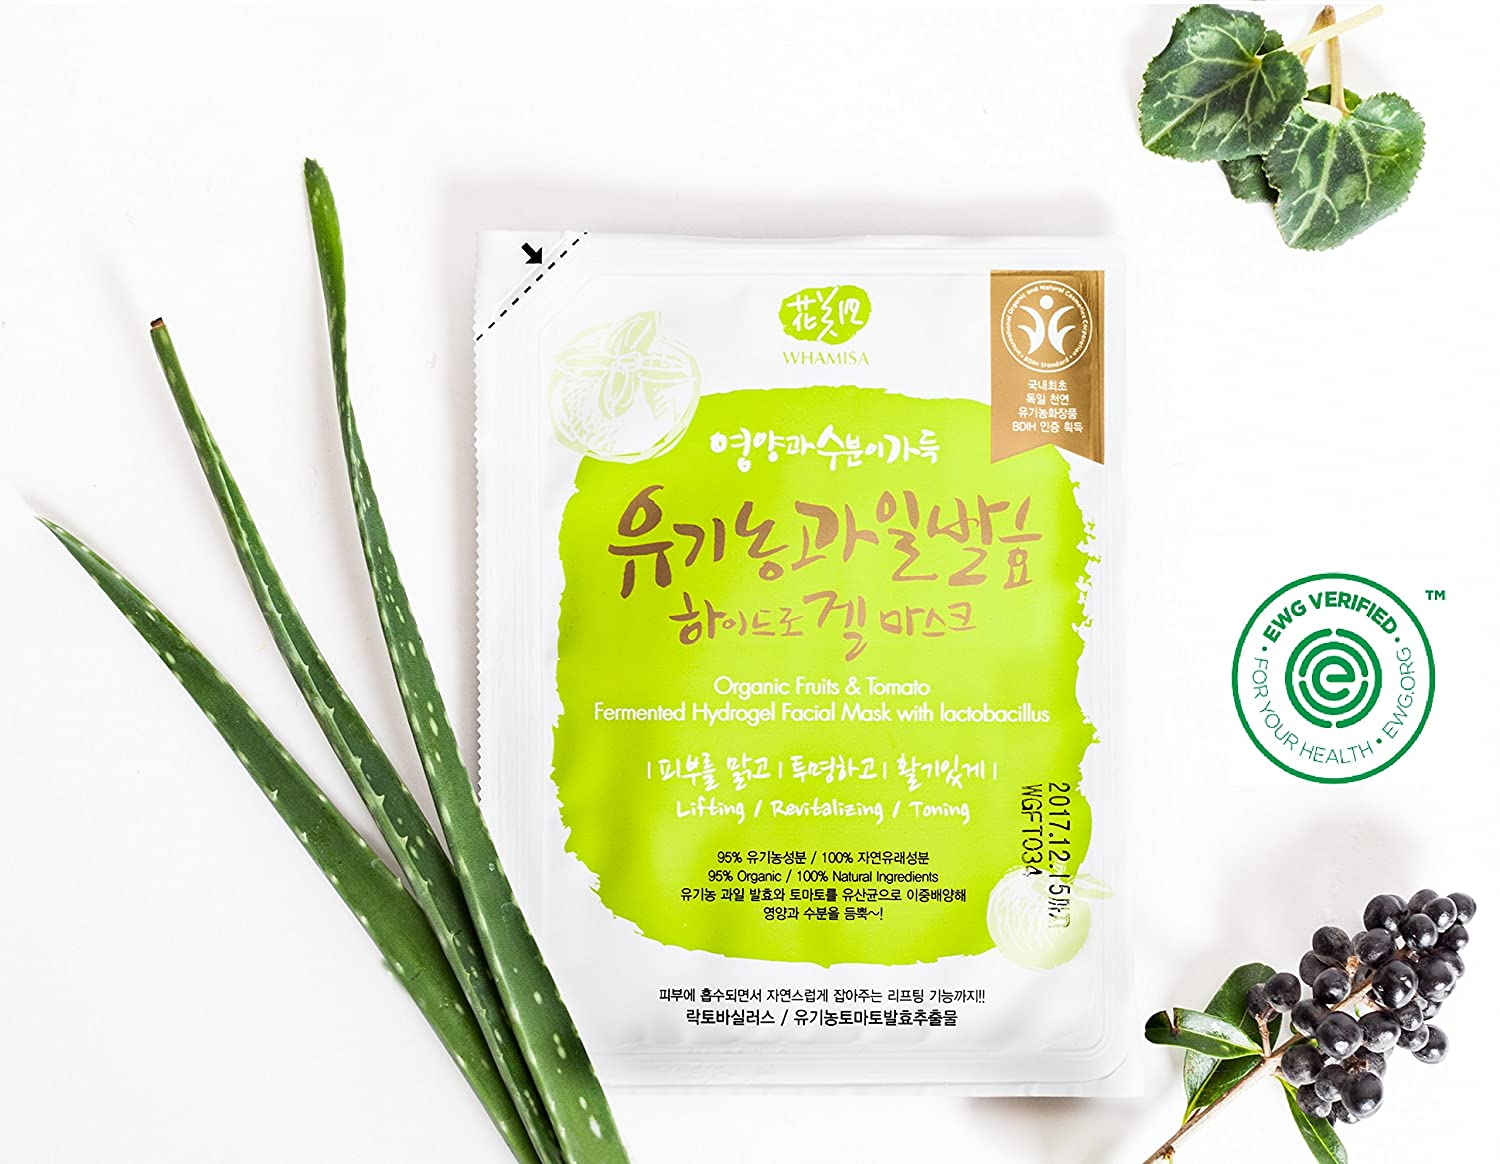 Organic Fruits Hydrogel Mask by Whamisa #21